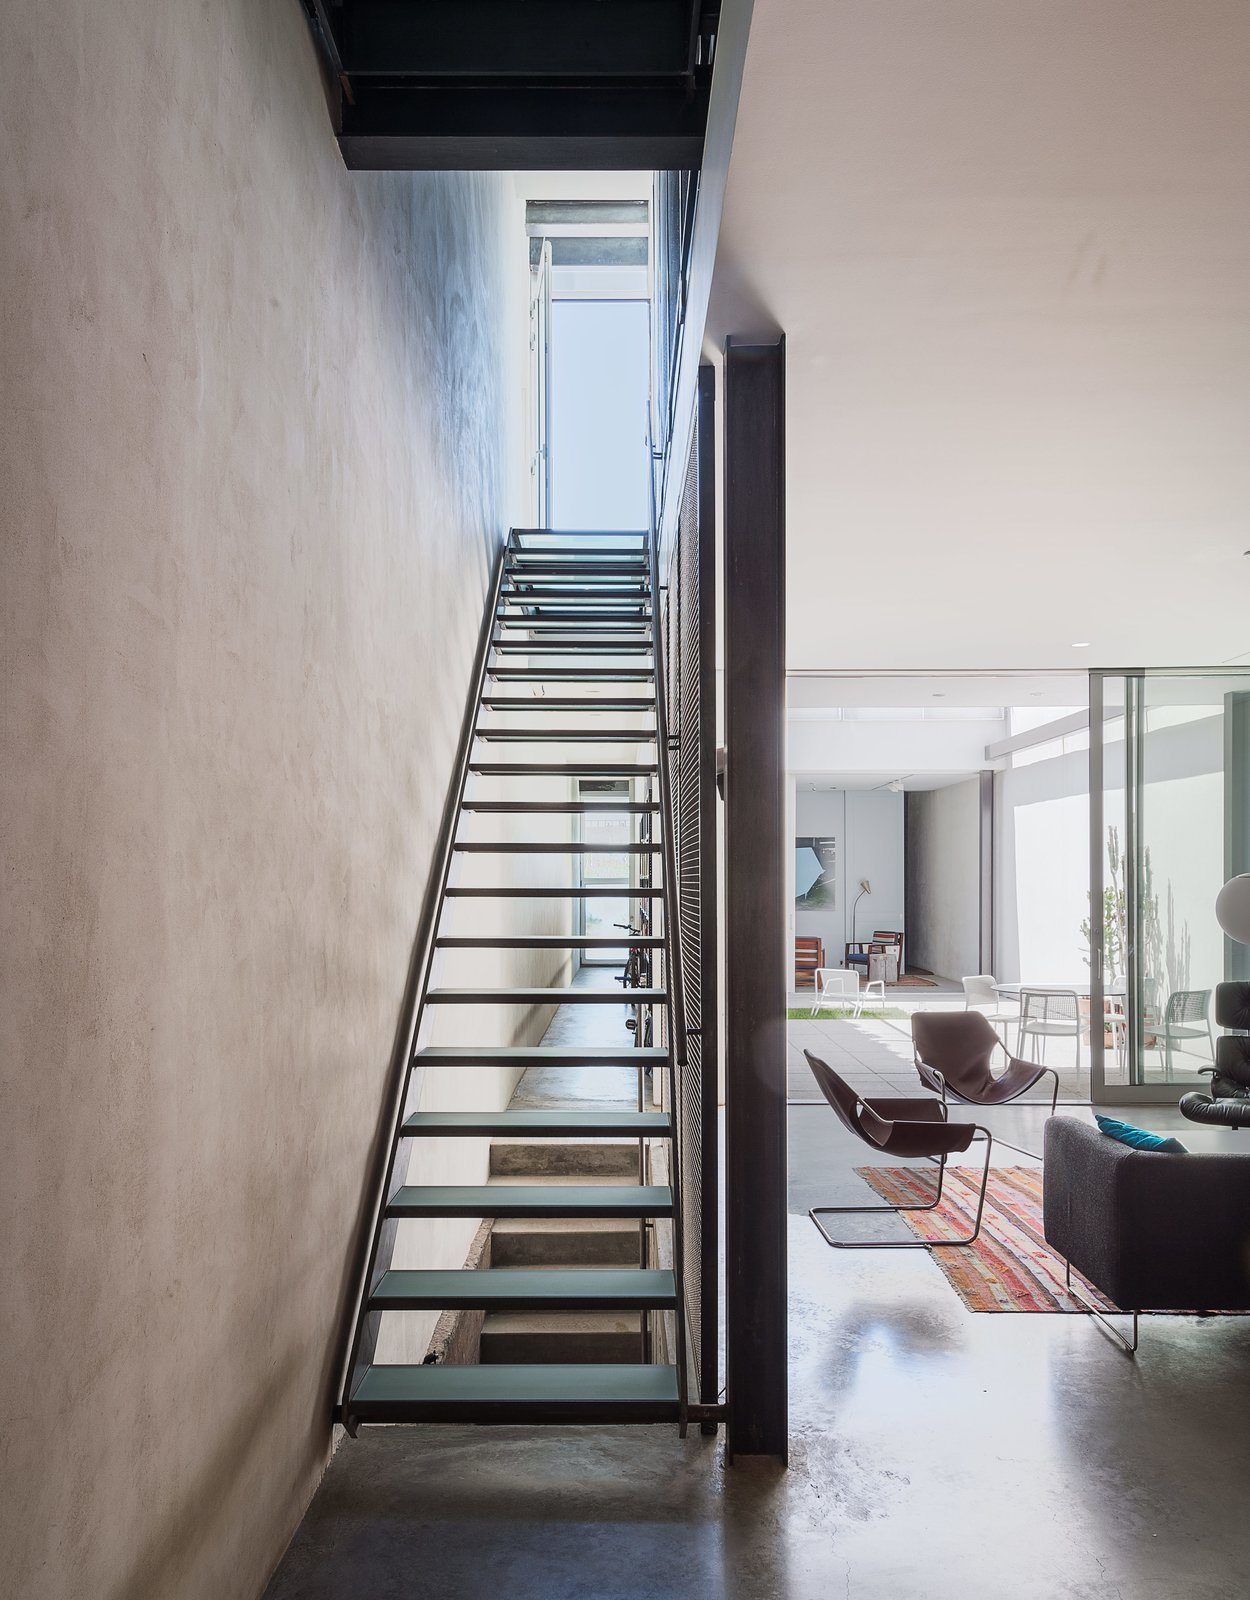 """Long, unobstructed corridors along the spine of the house provide ample cross-ventilation during warmer months—as well as sightlines that unite different areas of the home's narrow, linear footprint. """"When you're in the back of the building, you can literally see the front door of the person across the street,"""" says architect and resident Philippe Baumann. Thick industrial glass lines the footing of the stairwell with subtle transparency, allowing light to also traverse the space vertically. Tagged: Staircase, Metal Railing, and Metal Tread.  Photo 3 of 11 in Calling All Renovation Fanatics! 10 Garage Makeovers That Will Grab Your Attention from A Rooftop Garden Completes This Urban Pastoral Home"""